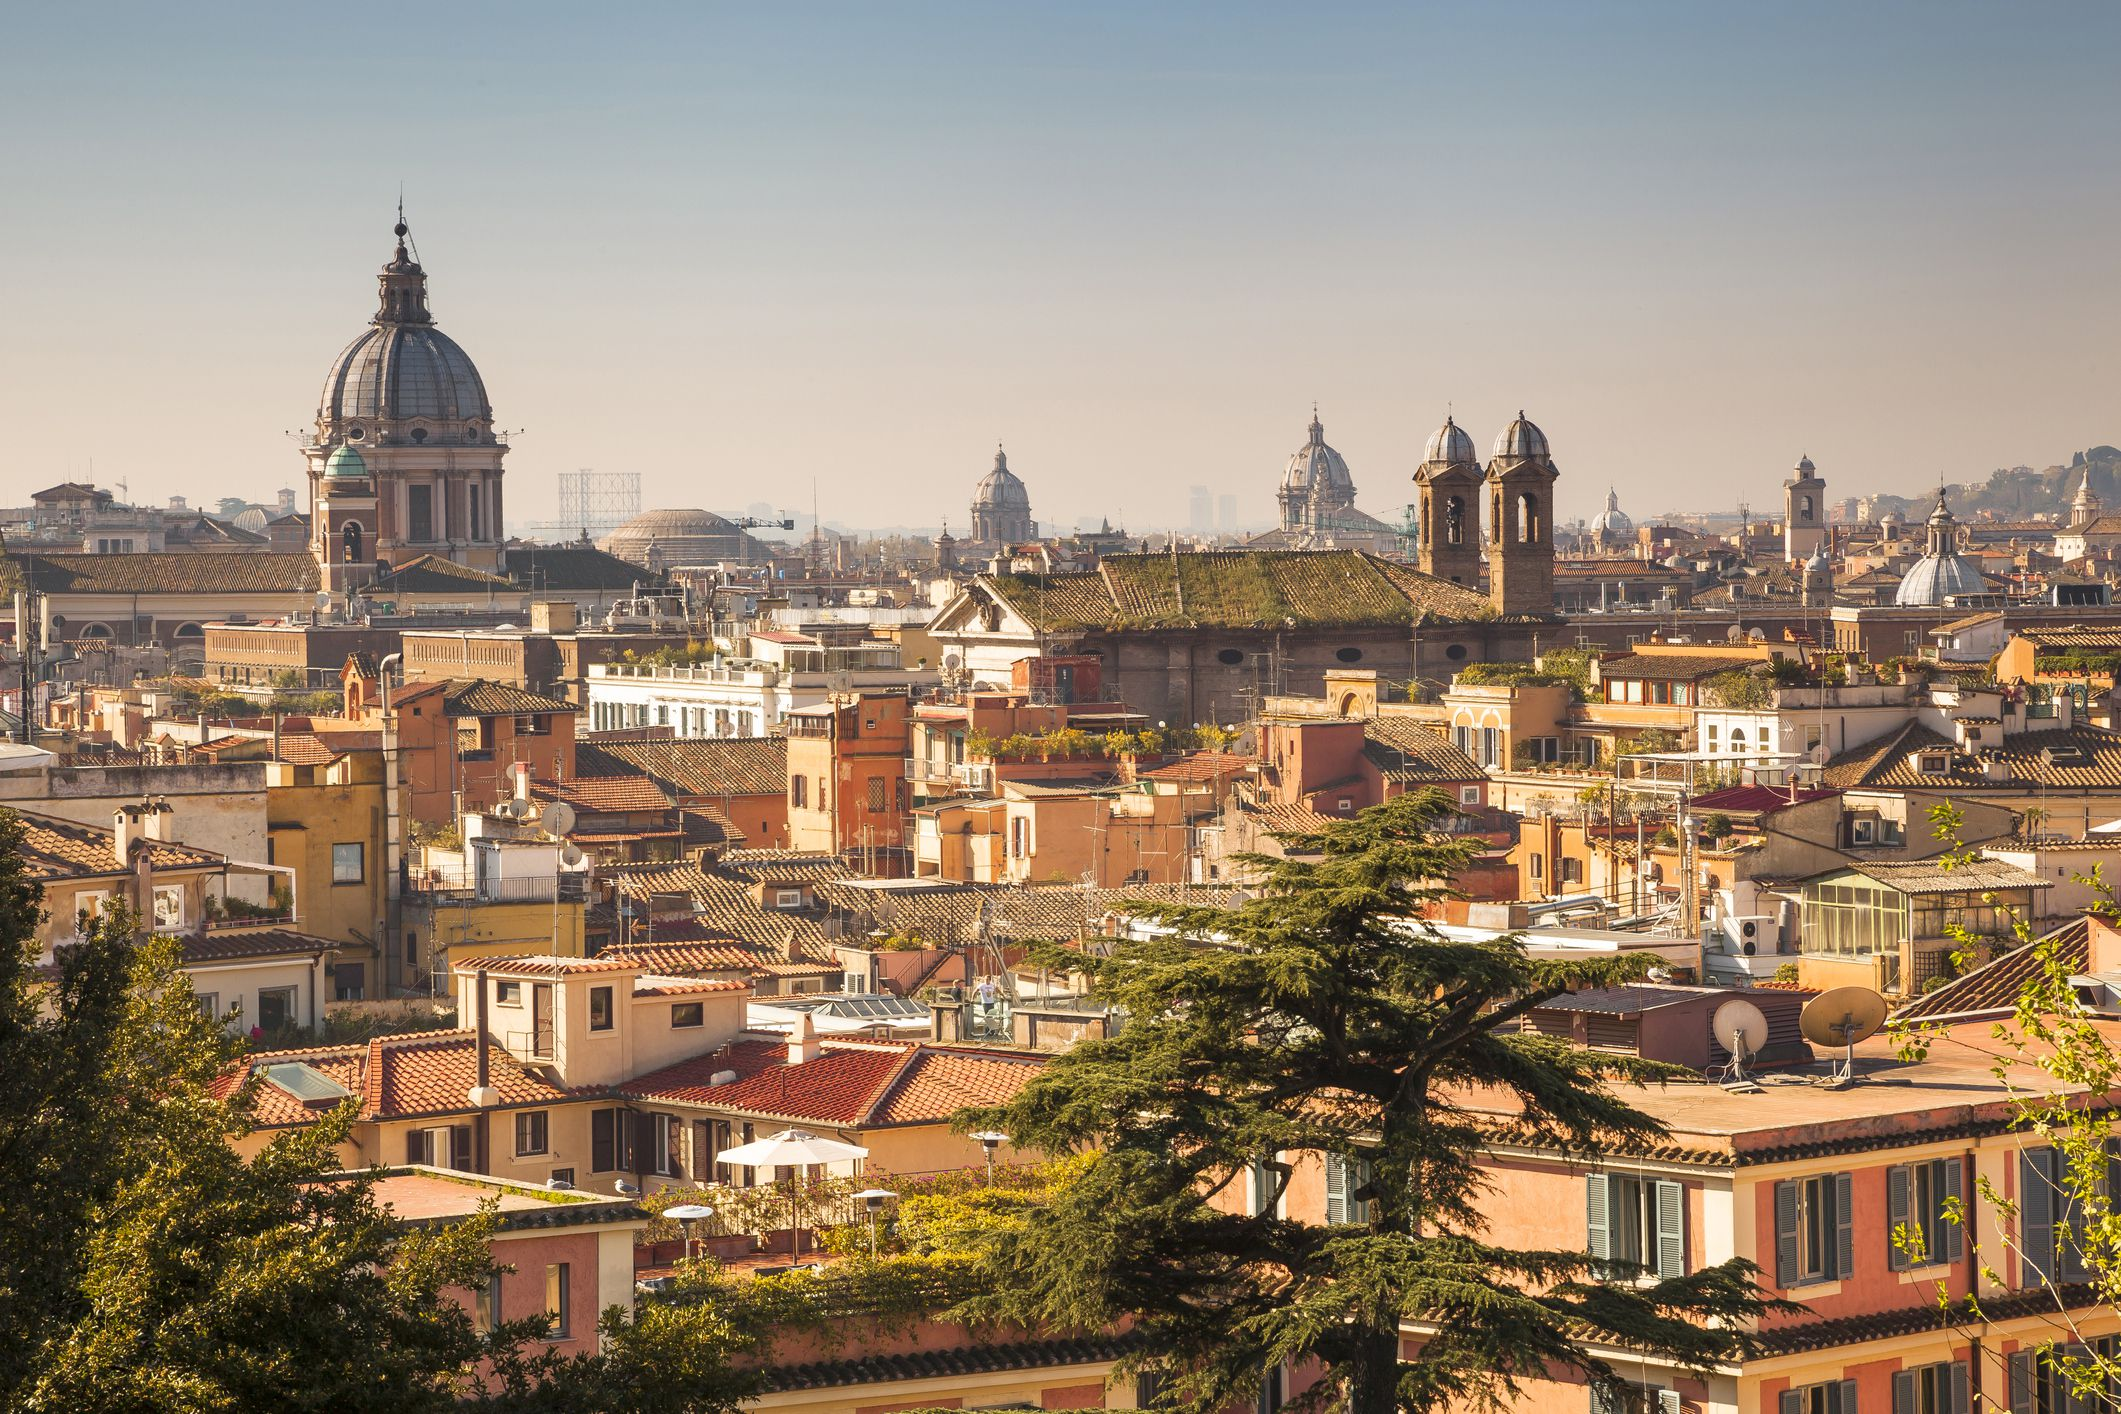 3 Days in Rome: What to See and Do